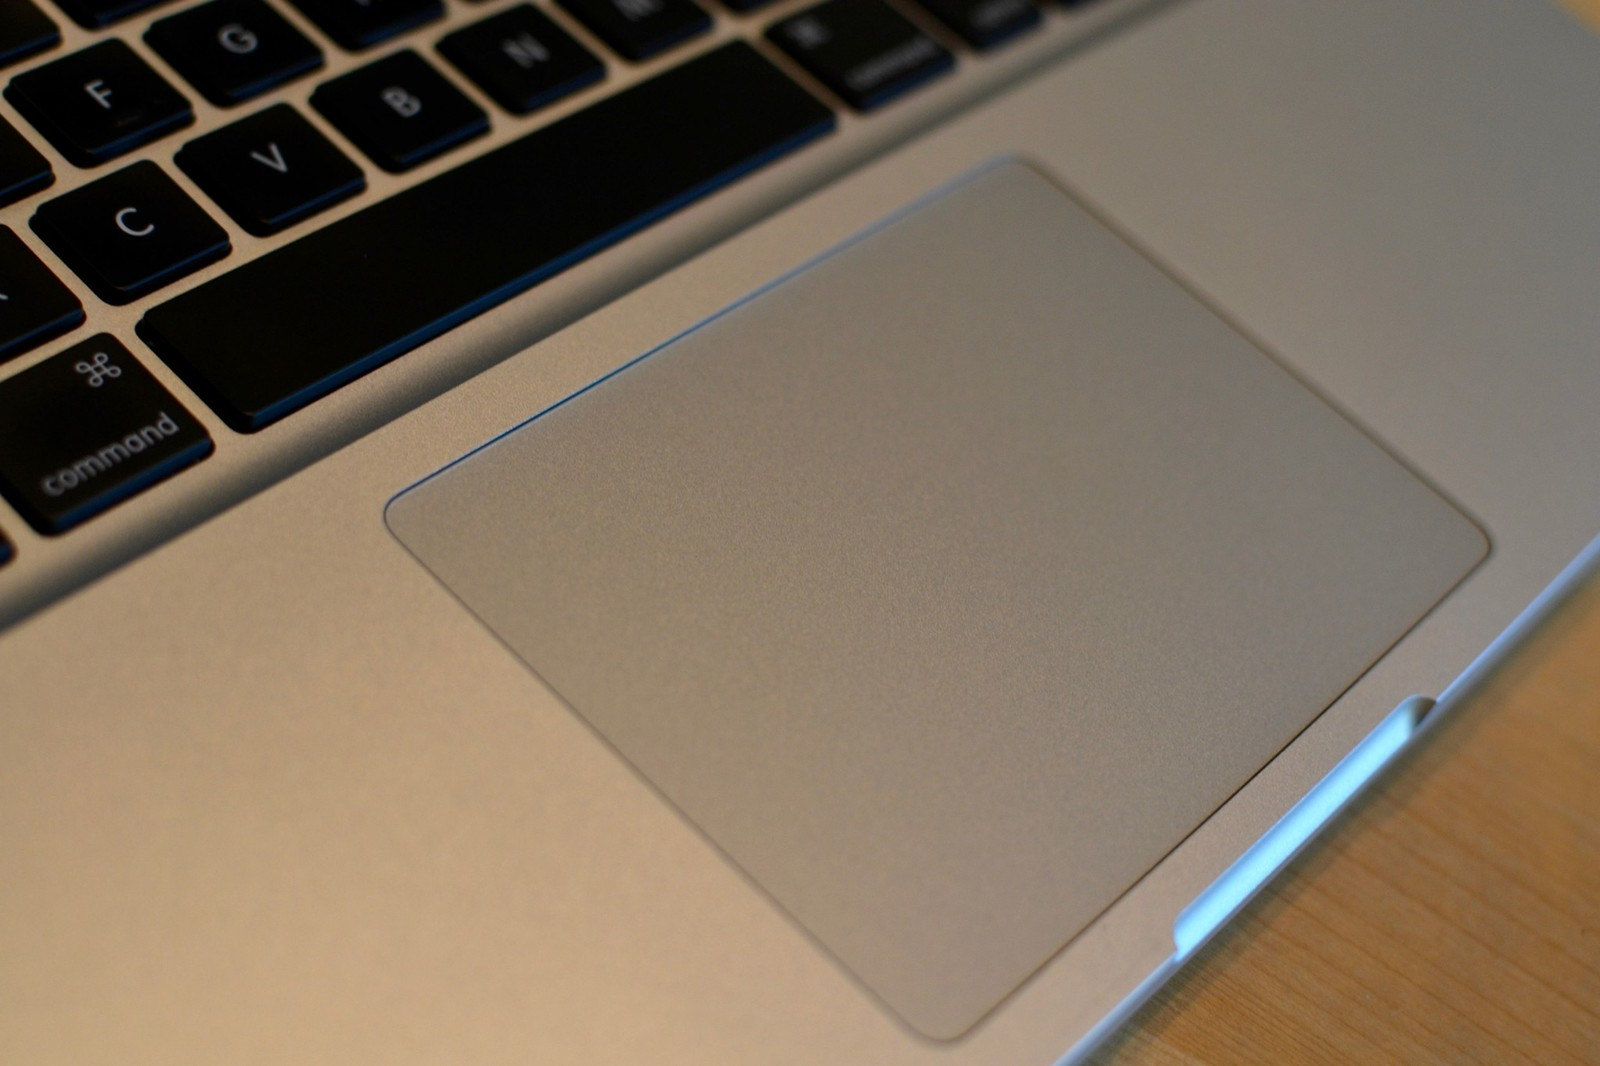 The trackpad on the Mac